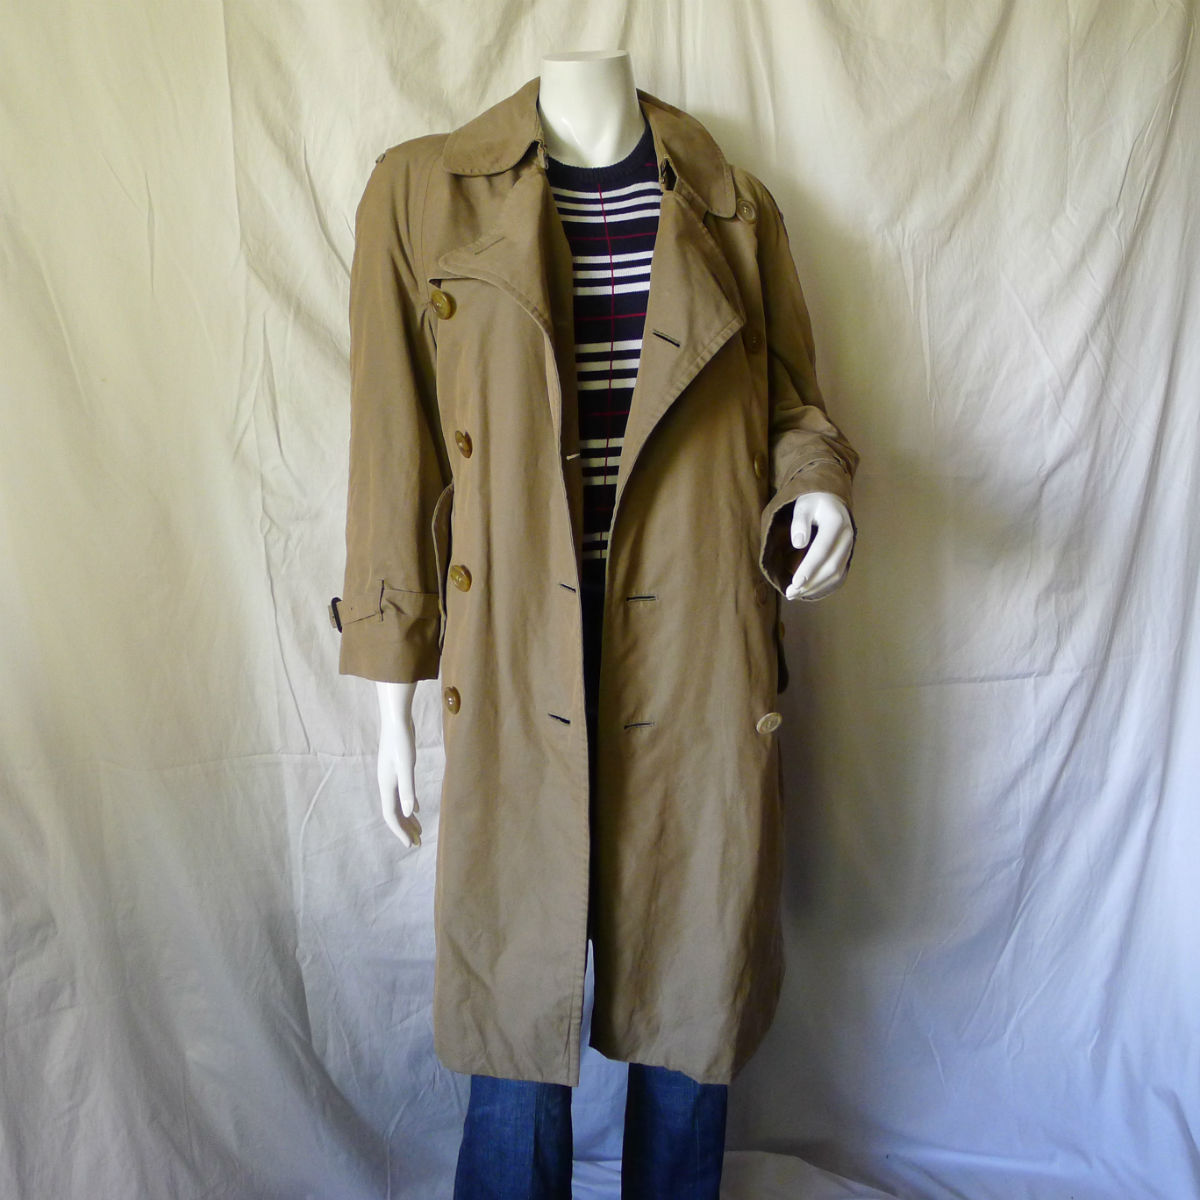 9fa1b5f8ca5c Burberry trench coat  men vs. women - BRYOLOGUE